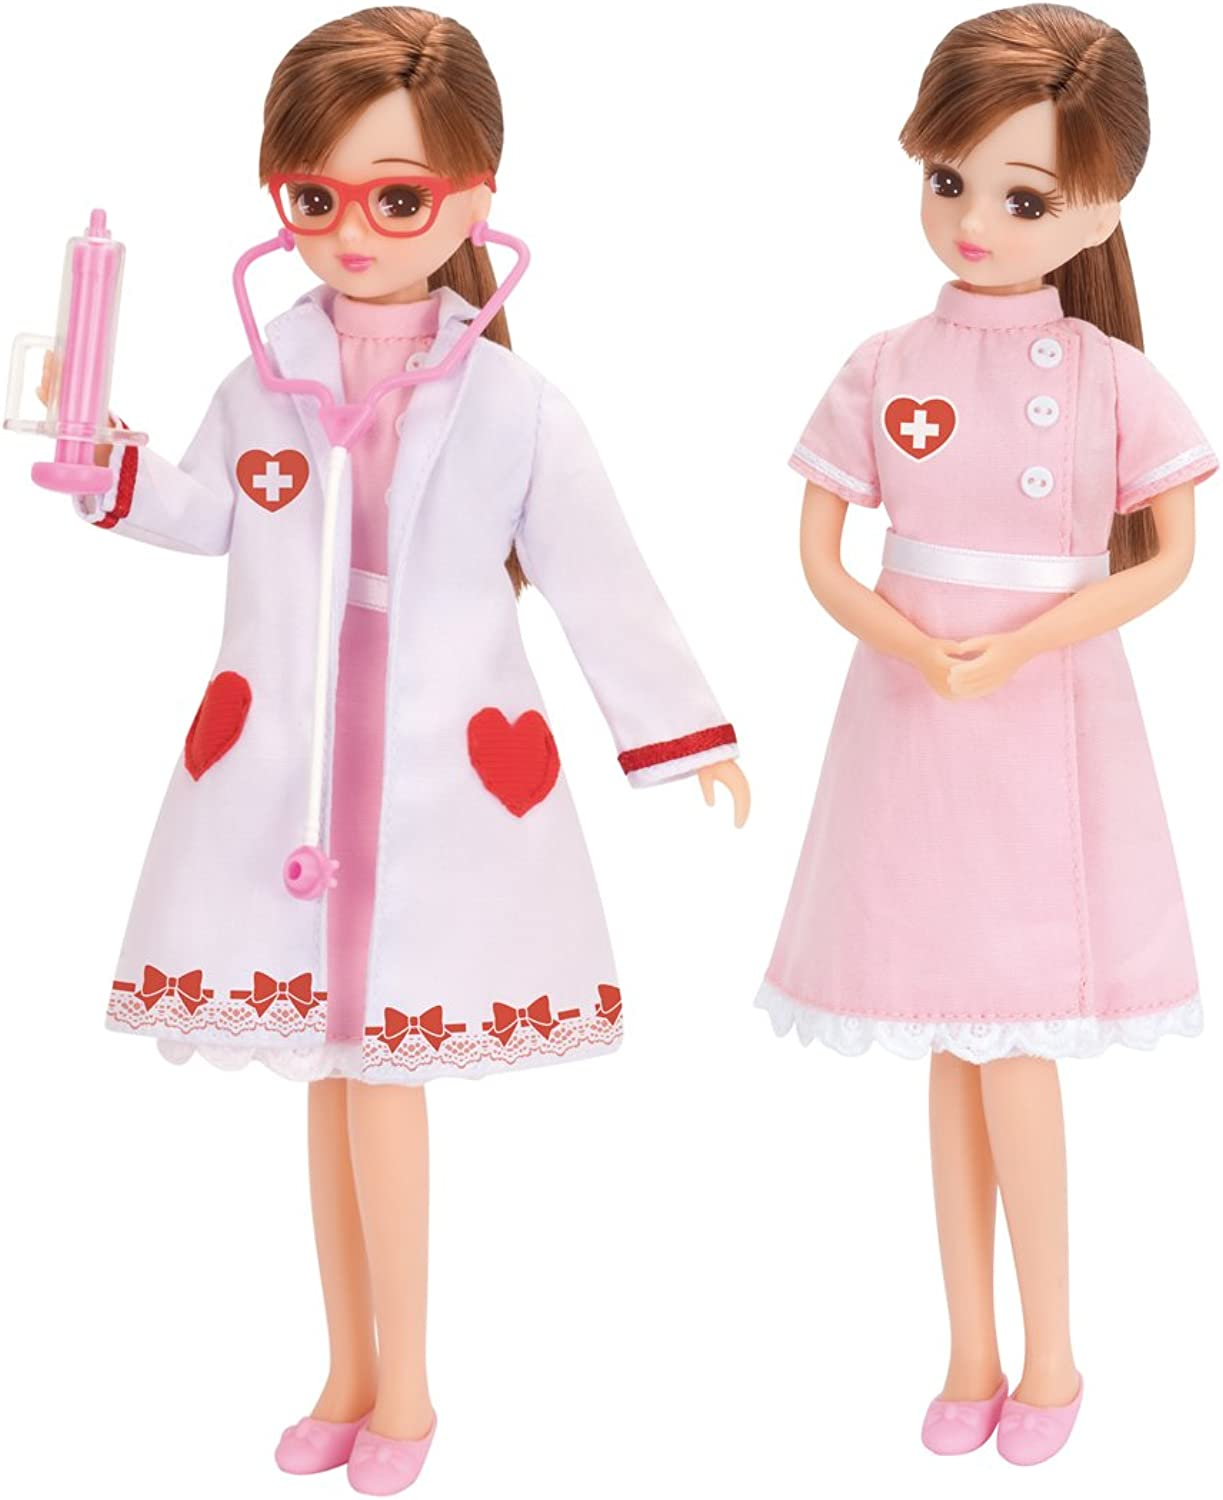 Licca Licca Licca Chan Hospital Doctor Accessories and Clothes Set